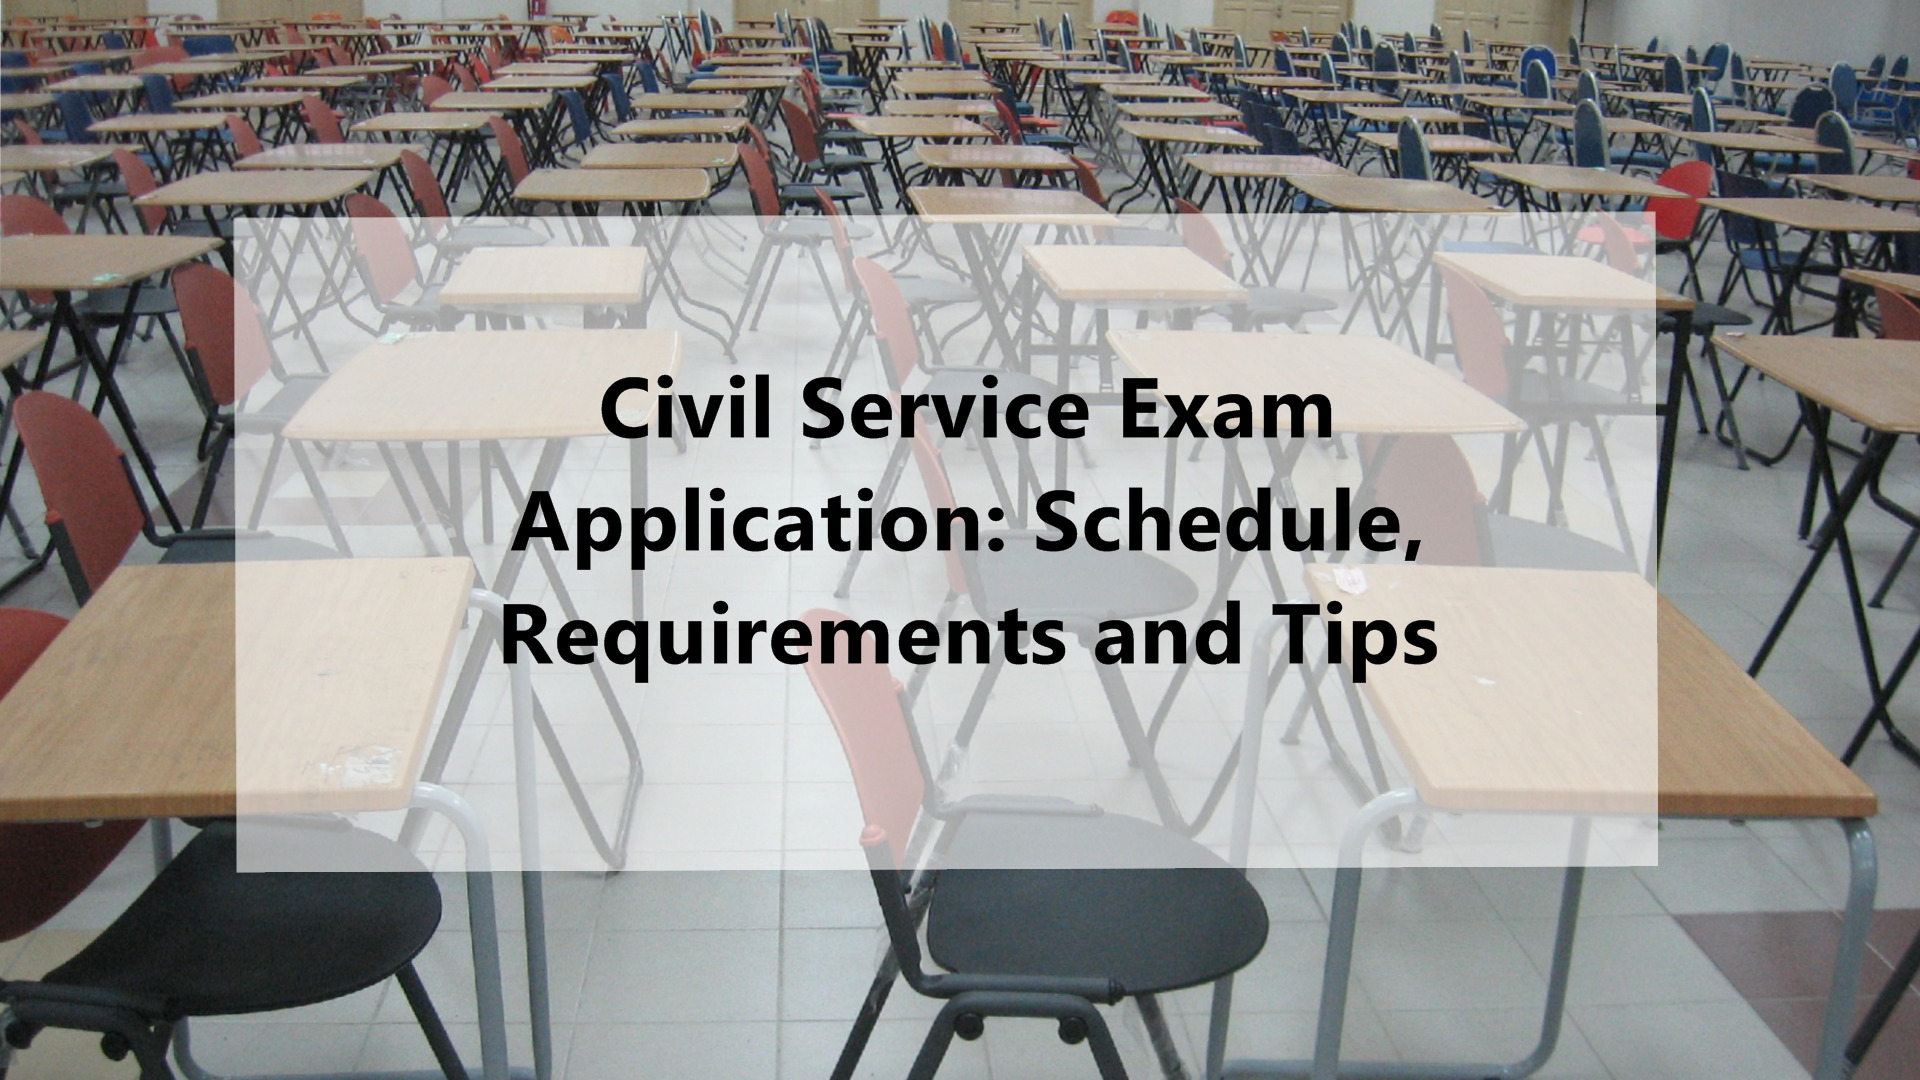 Civil Service Exam Application 2017 Schedule Requirements And Tips